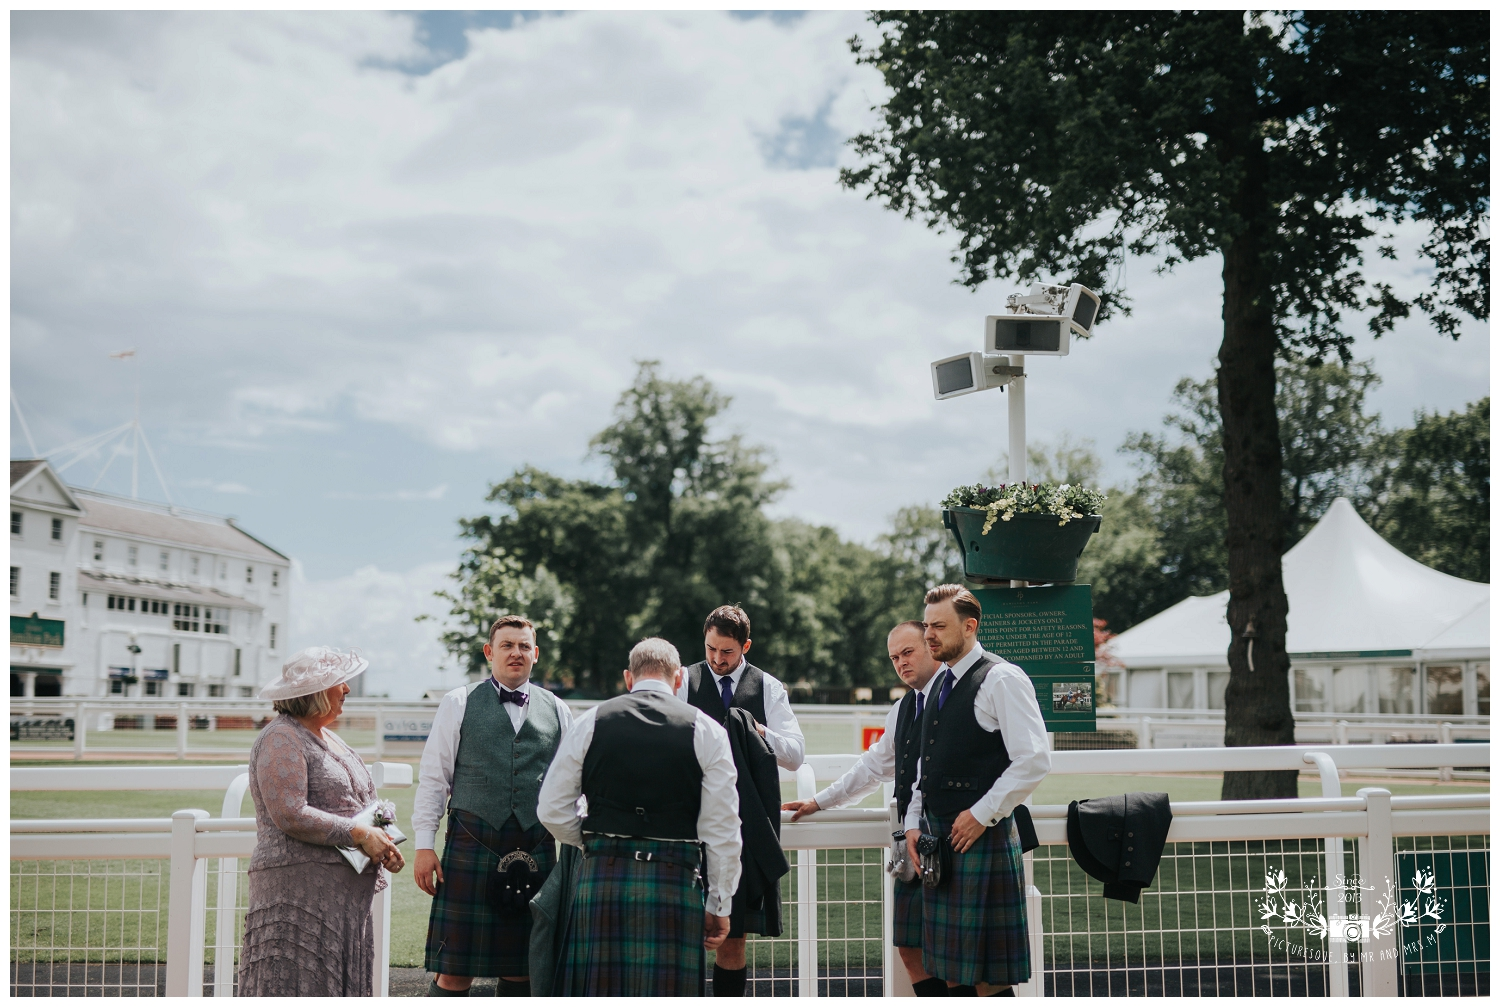 Hamilton Park Racecourse  wedding photography, Picturesque by Mr and Mrs M_0022.jpg